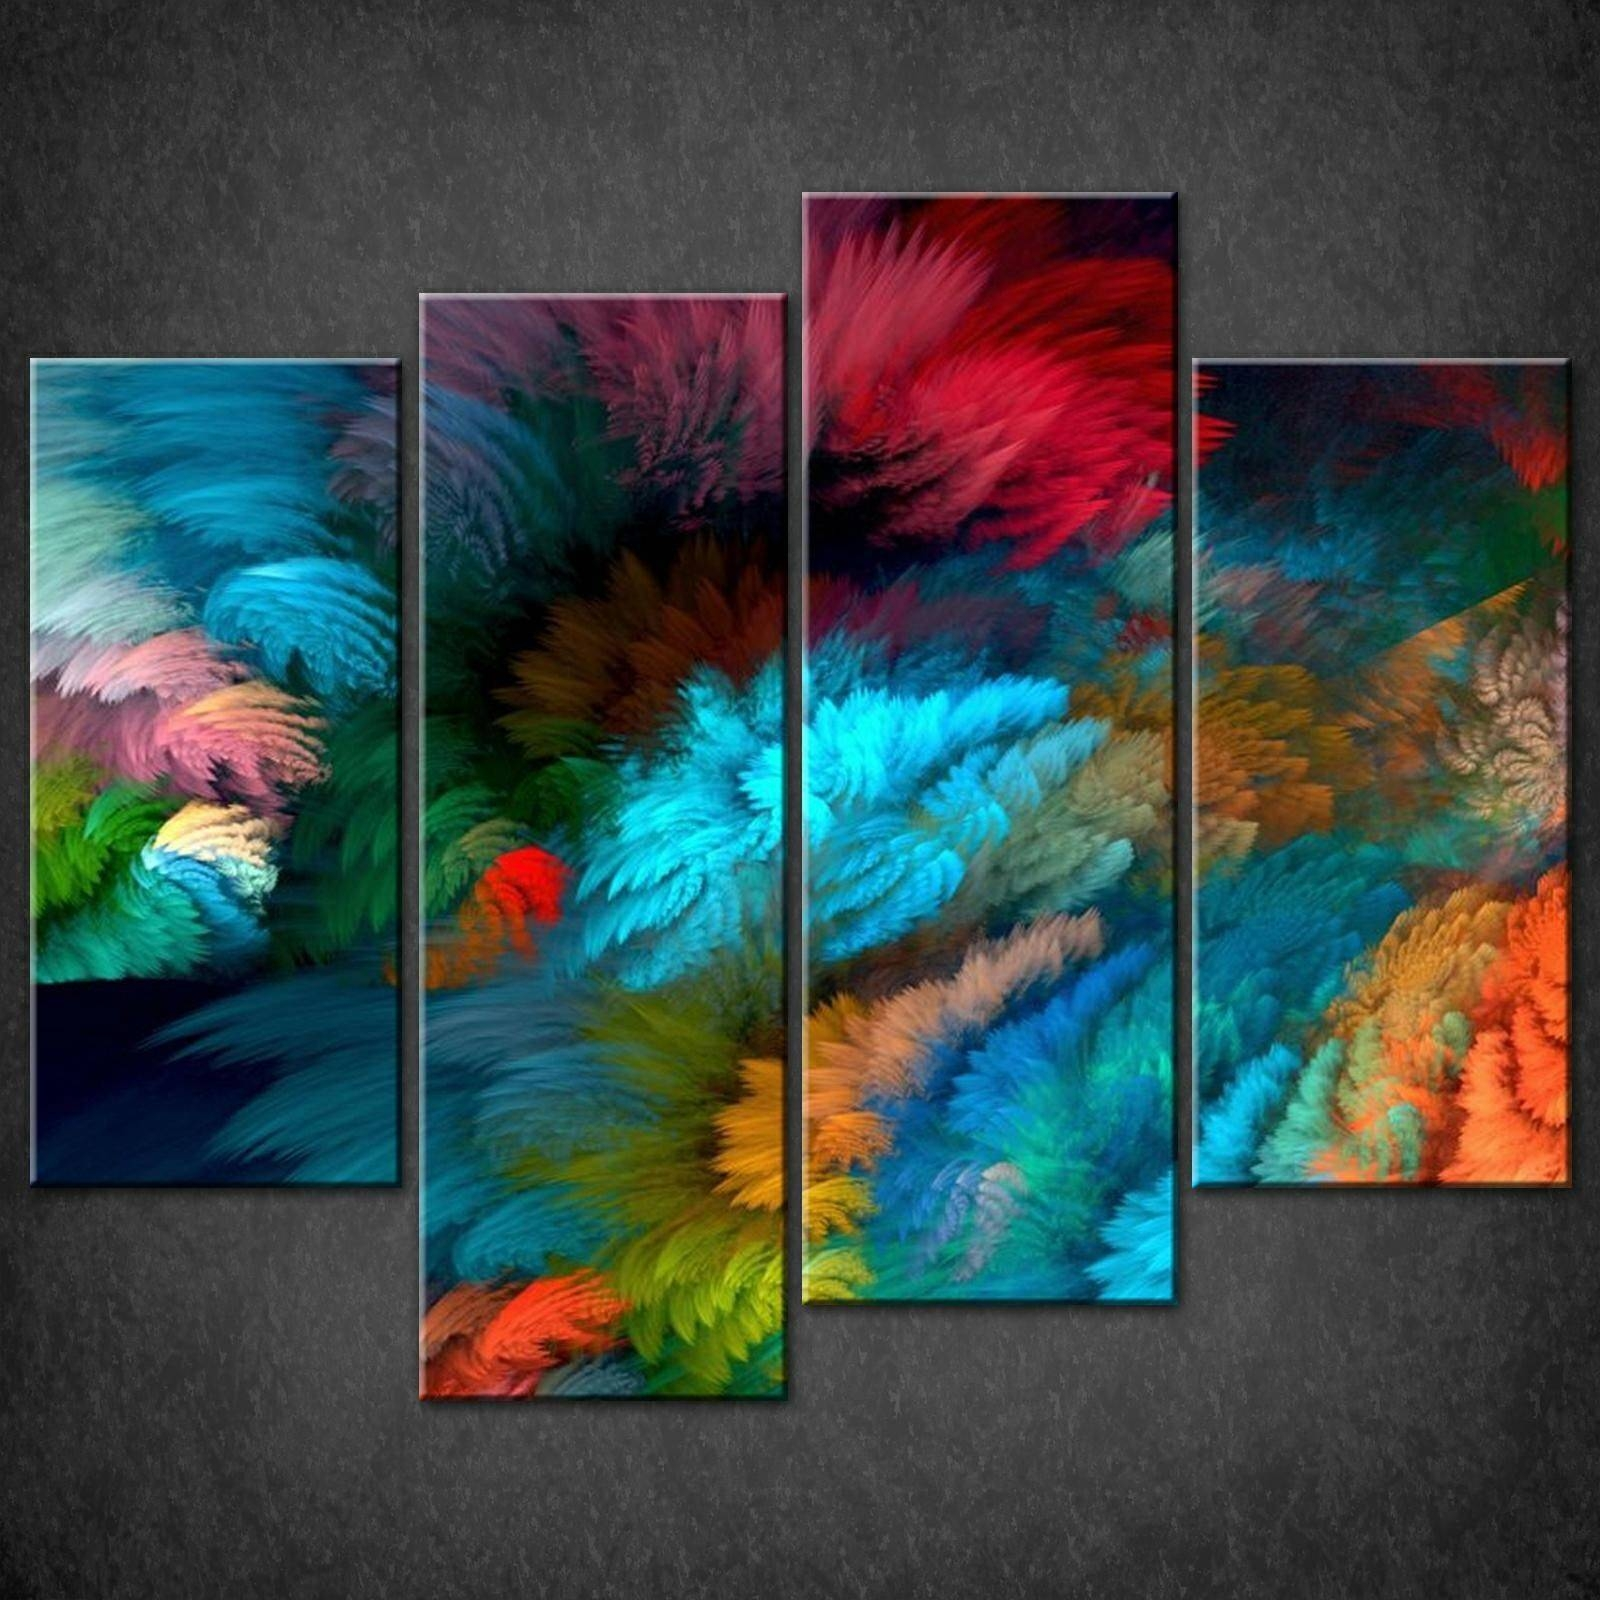 Decor: Large Abstract Colourful Split Canvas Wall Art Pictures Prints Regarding Most Up To Date Split Wall Art (Gallery 5 of 20)